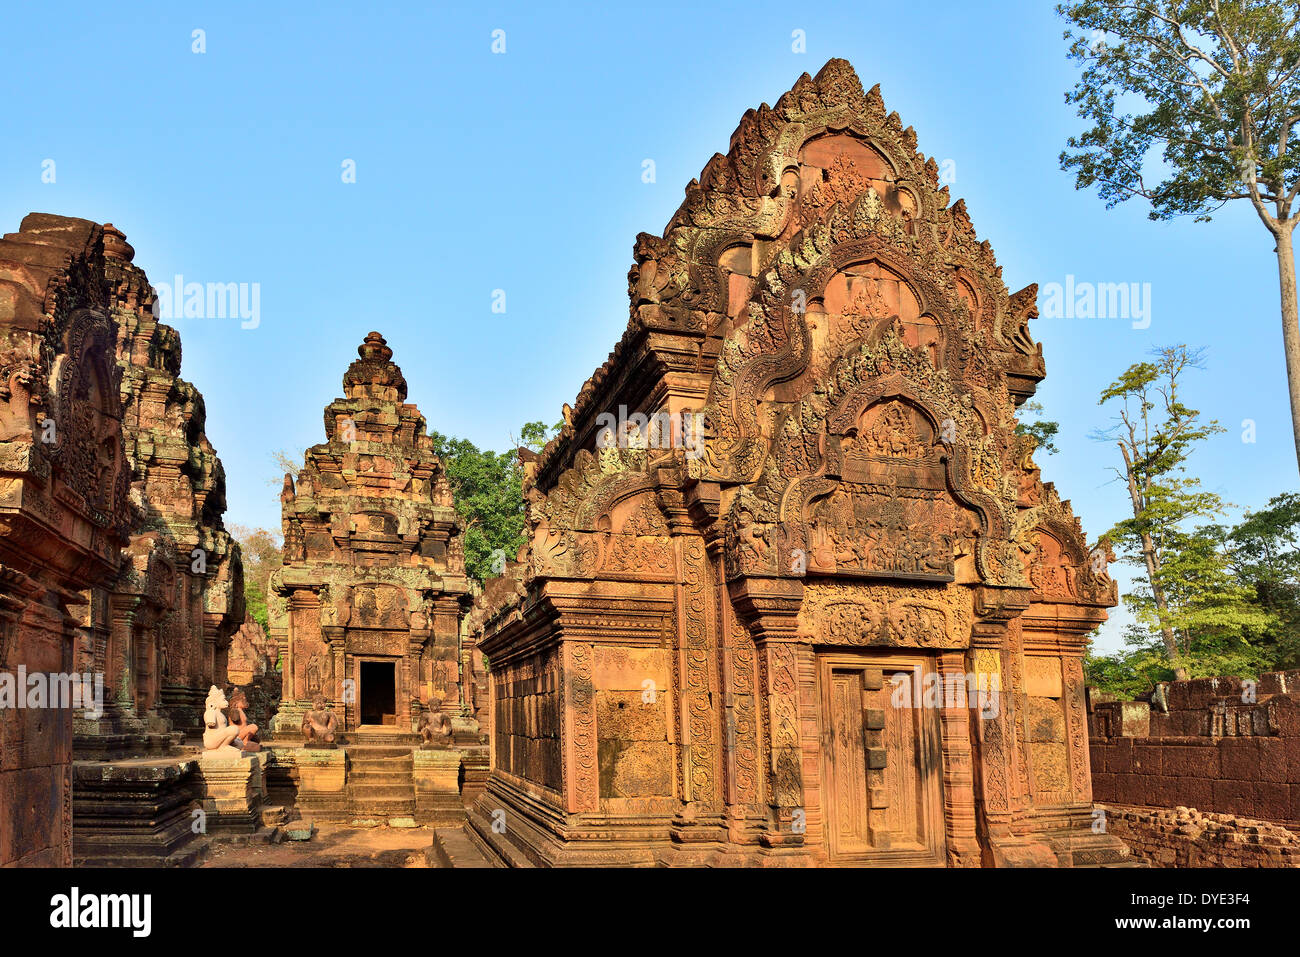 The North tower of the central sanctuary cluster of Banteay Srei ,known for its intricacy of the bas relief carvings on walls - Stock Image